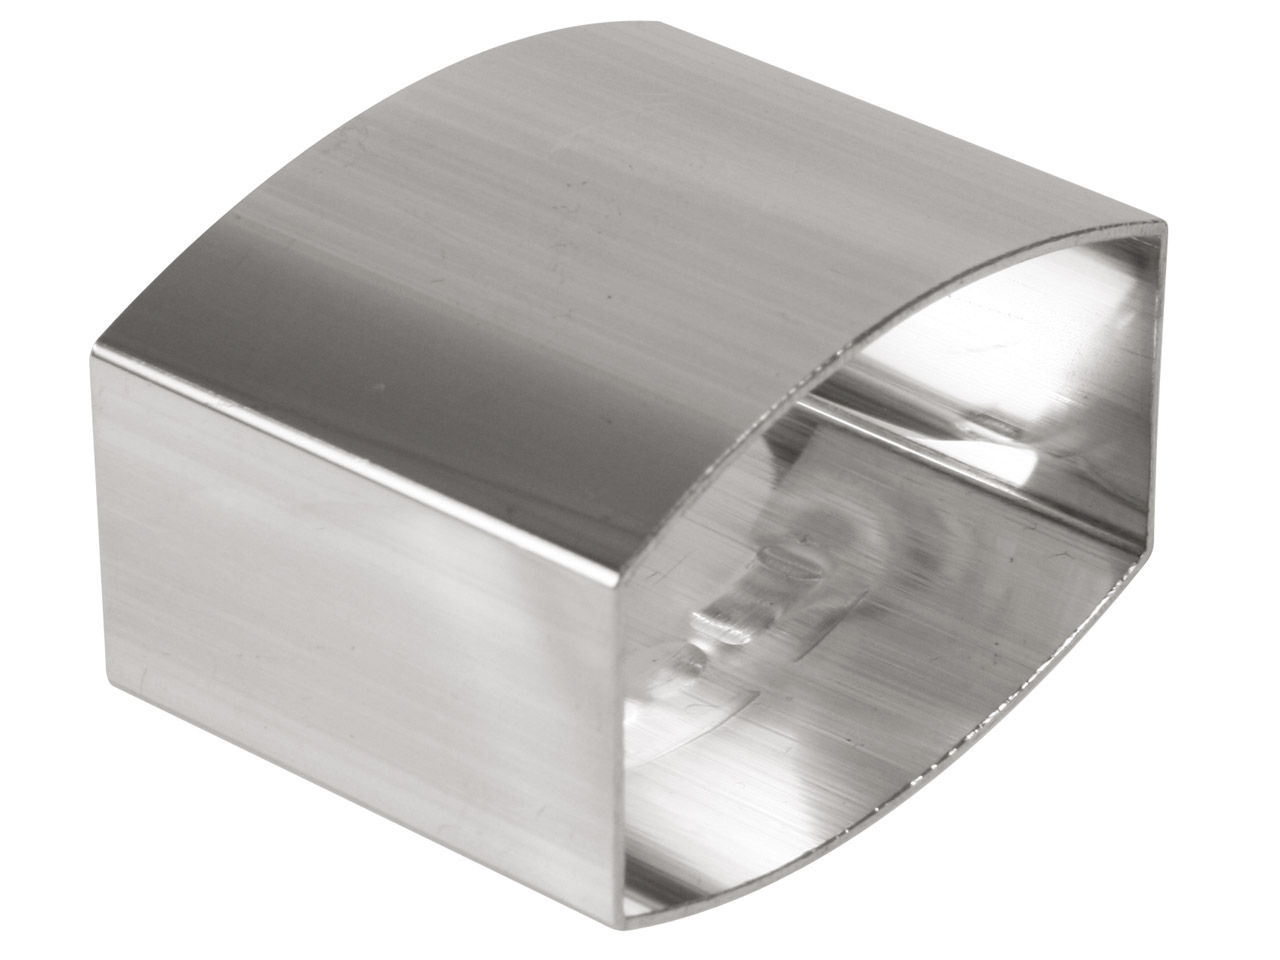 Sterling Silver Napkin Ring Oval   Unhallmarked With Flat Sides